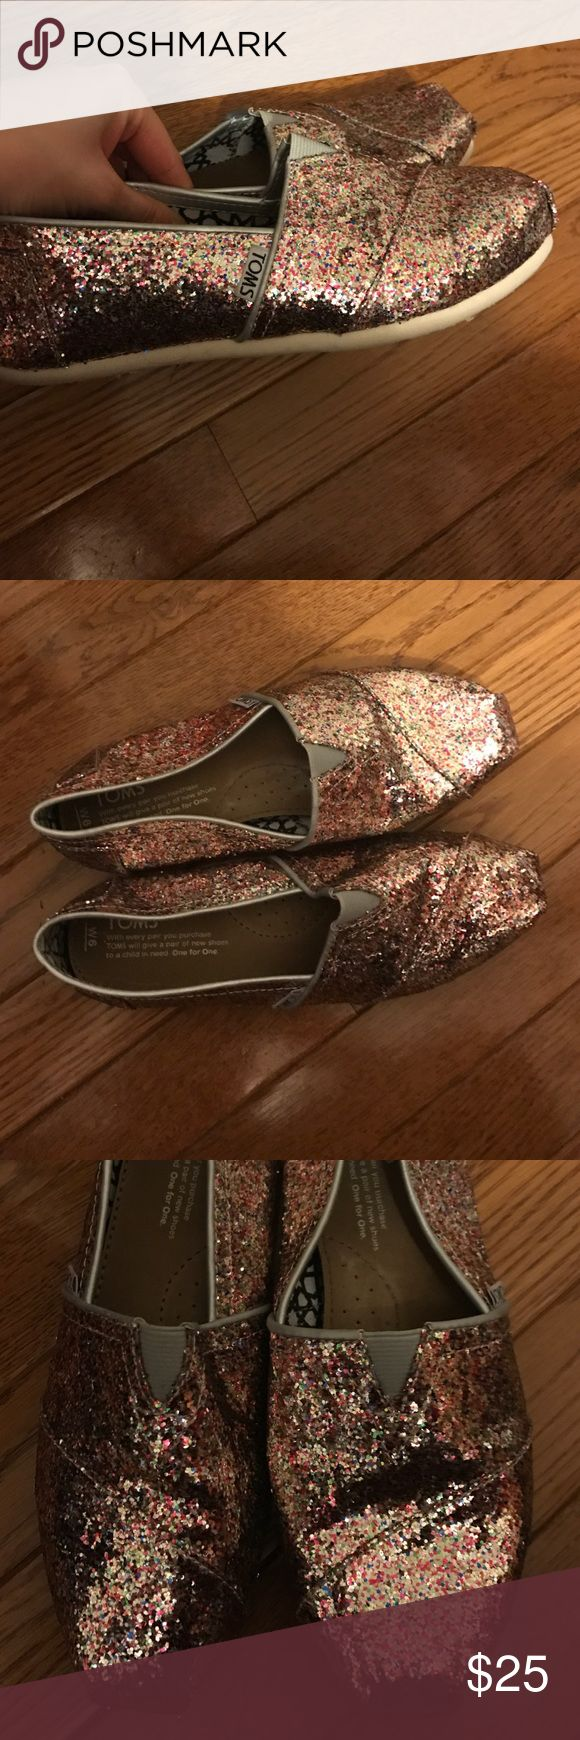 Glitter Toms W6 Lightly used glitter toms in great condition. TOMS Shoes Flats & Loafers